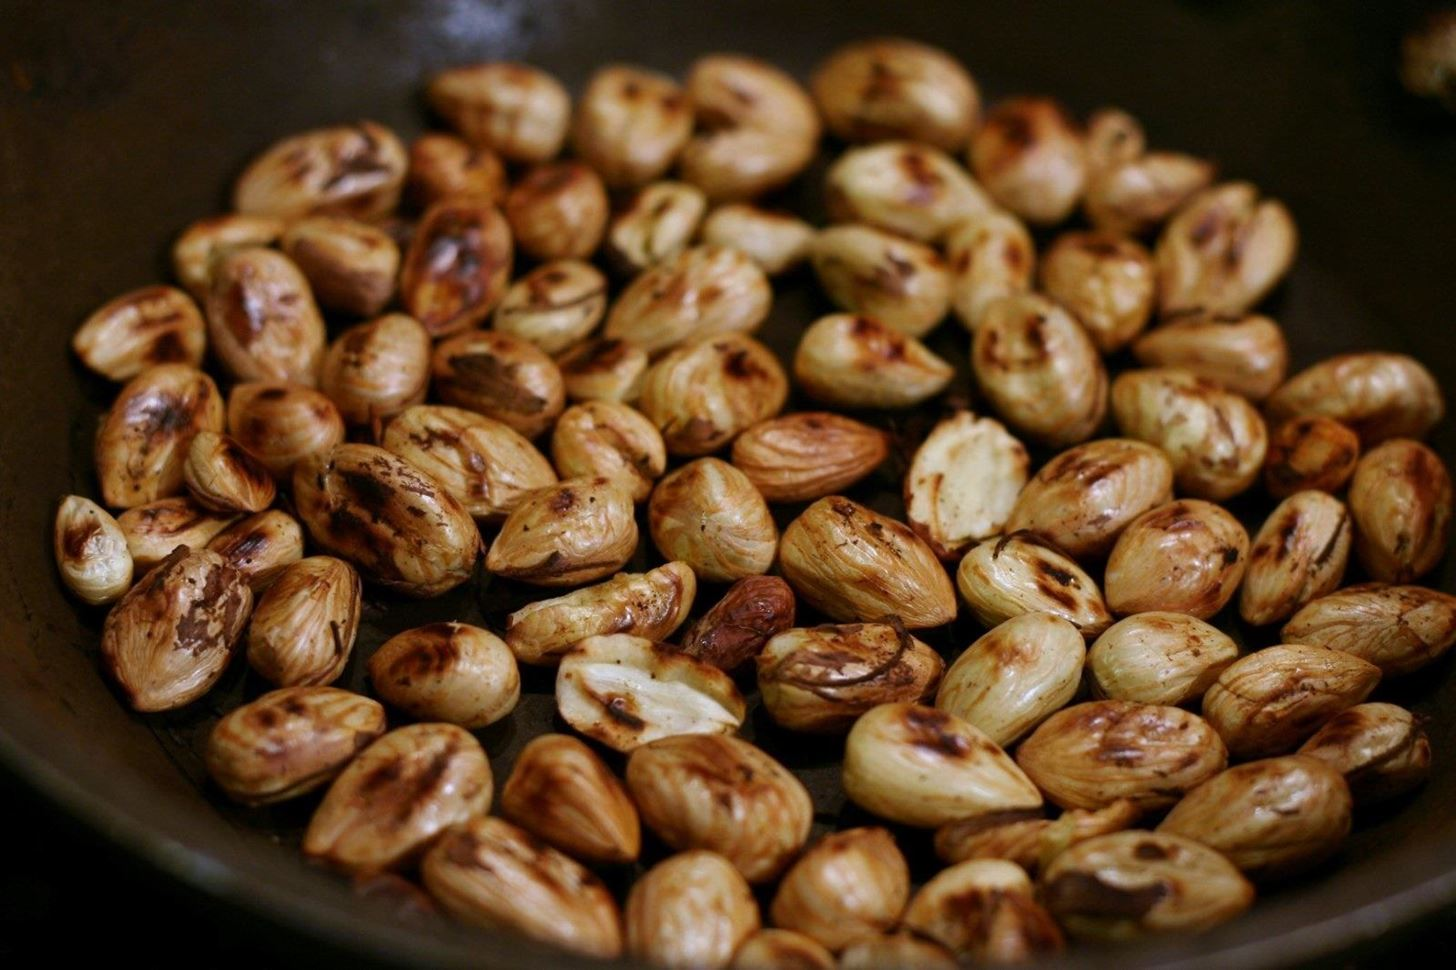 Ingredients 101: Toasting Nuts Is a Necessary Evil & Here's Why